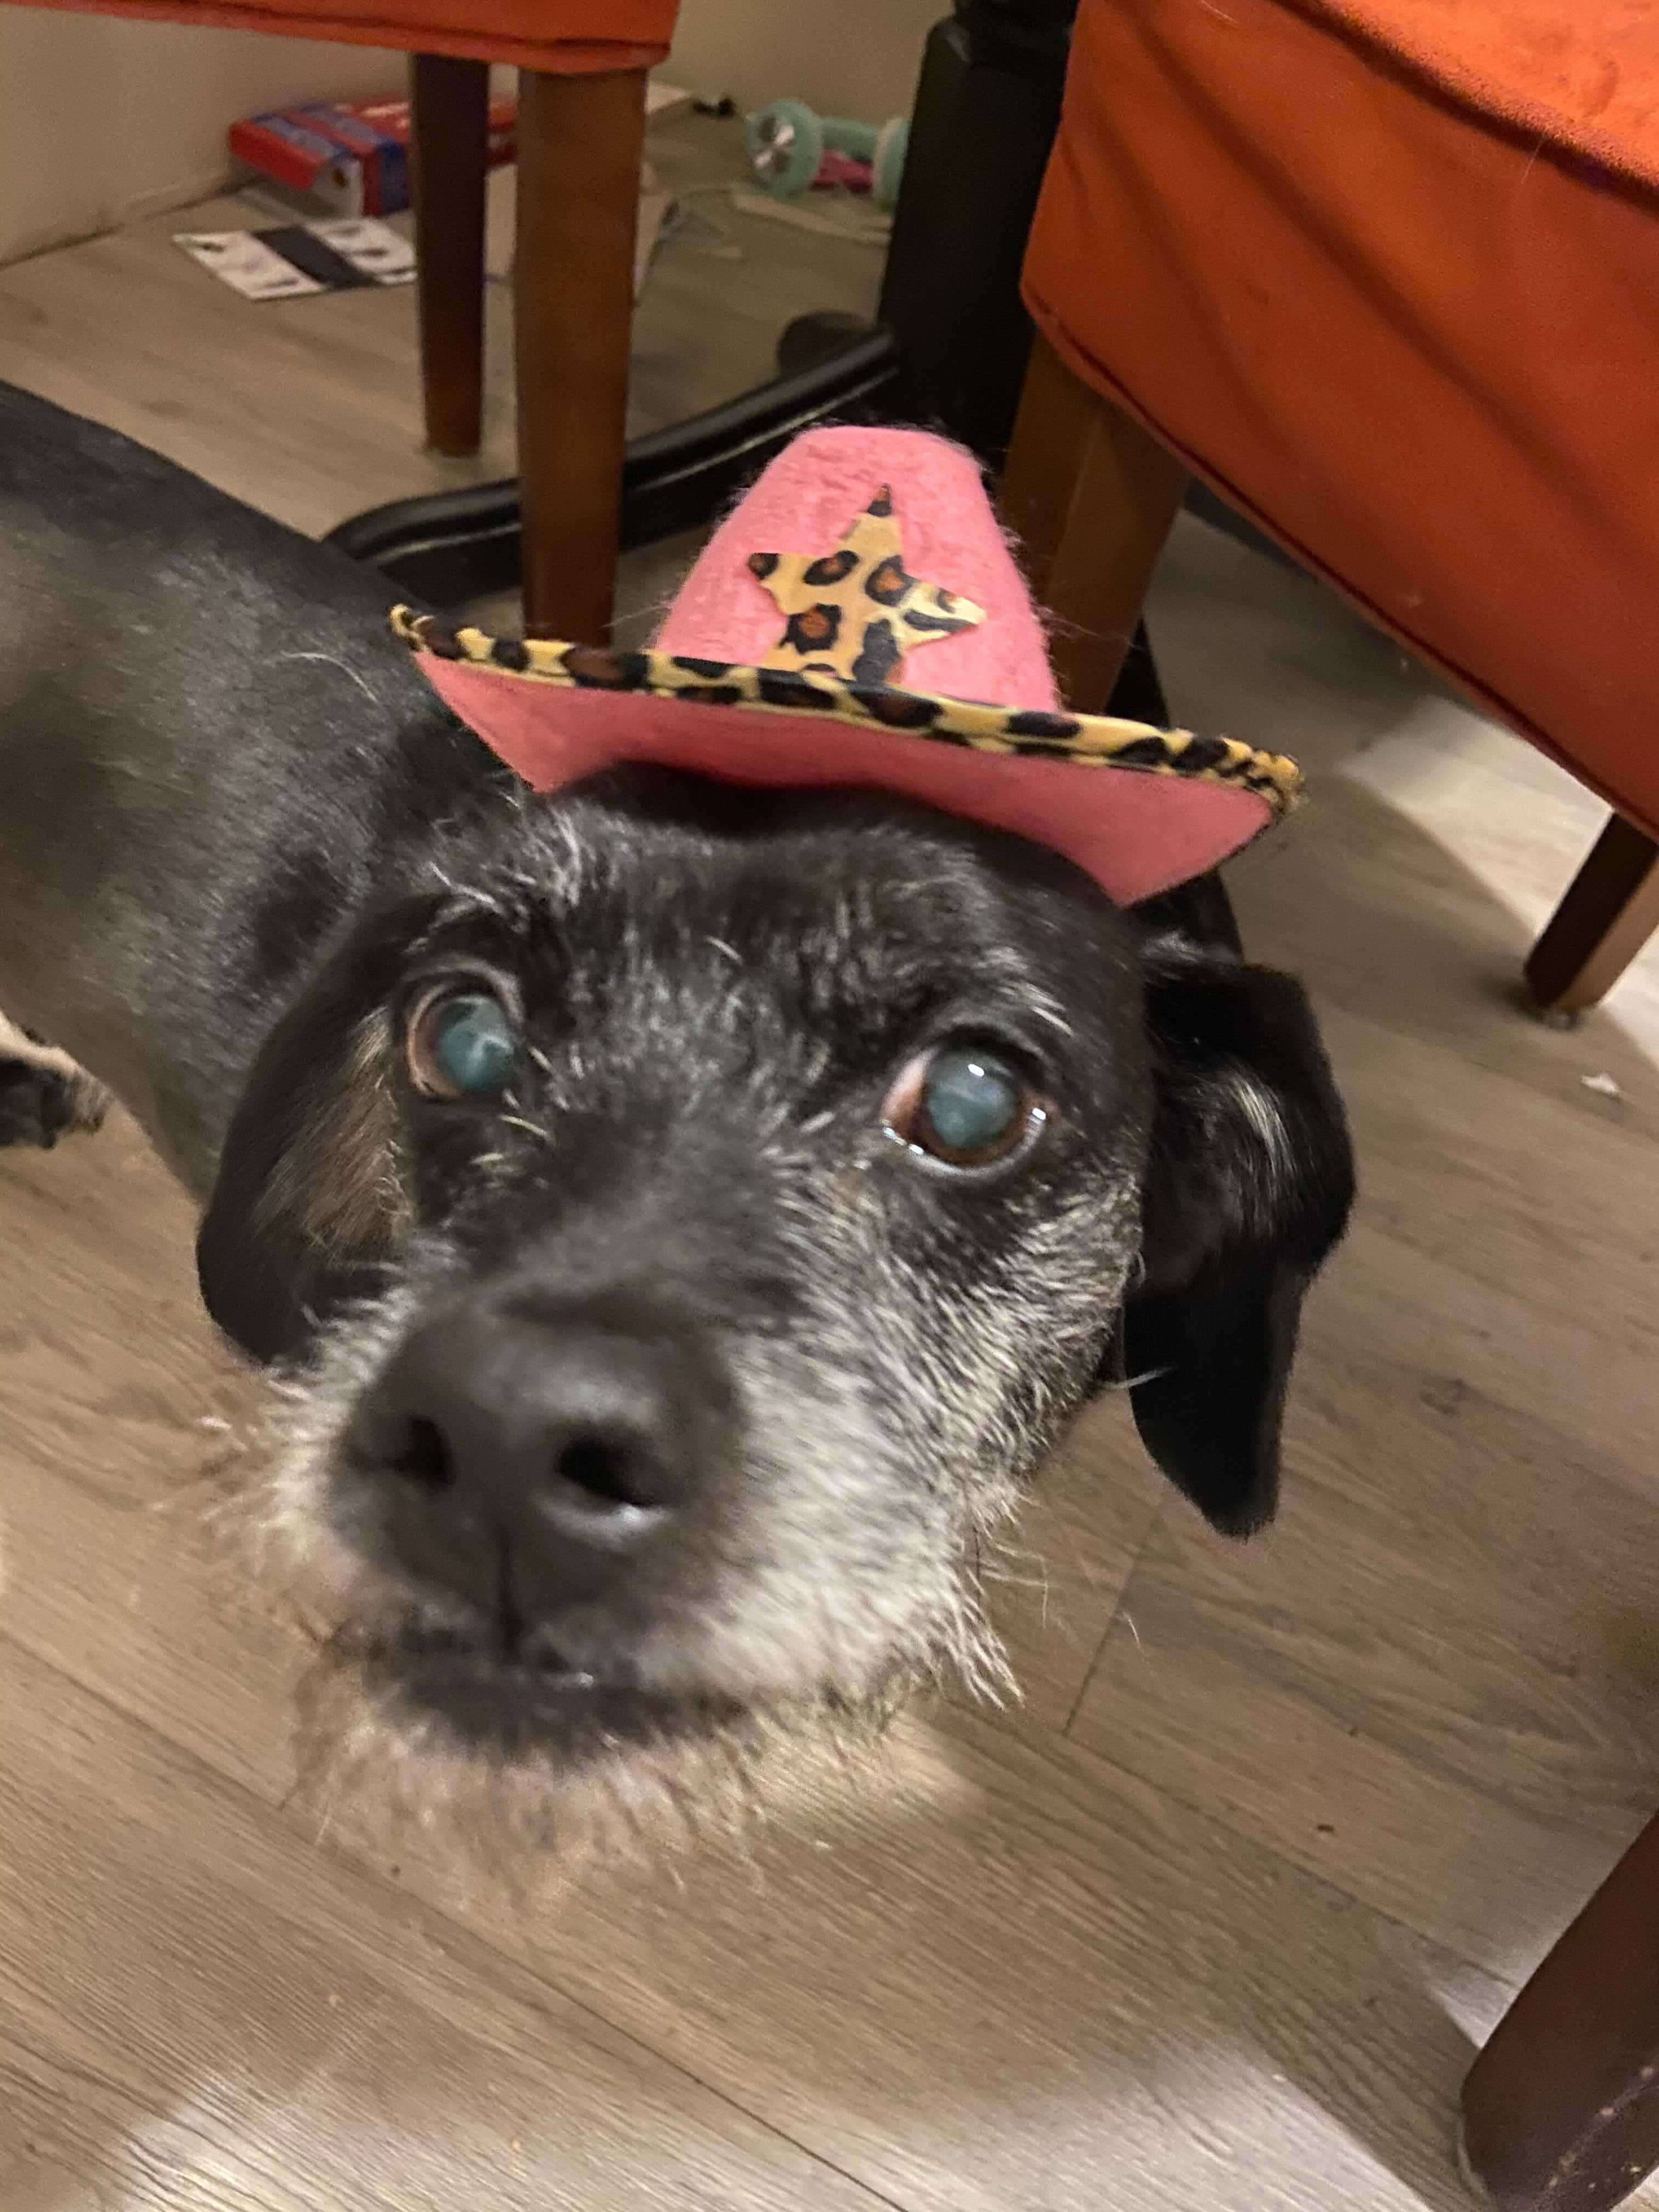 A small, old black and white dog wears a pink cowboy hat with a leopard print star and trim